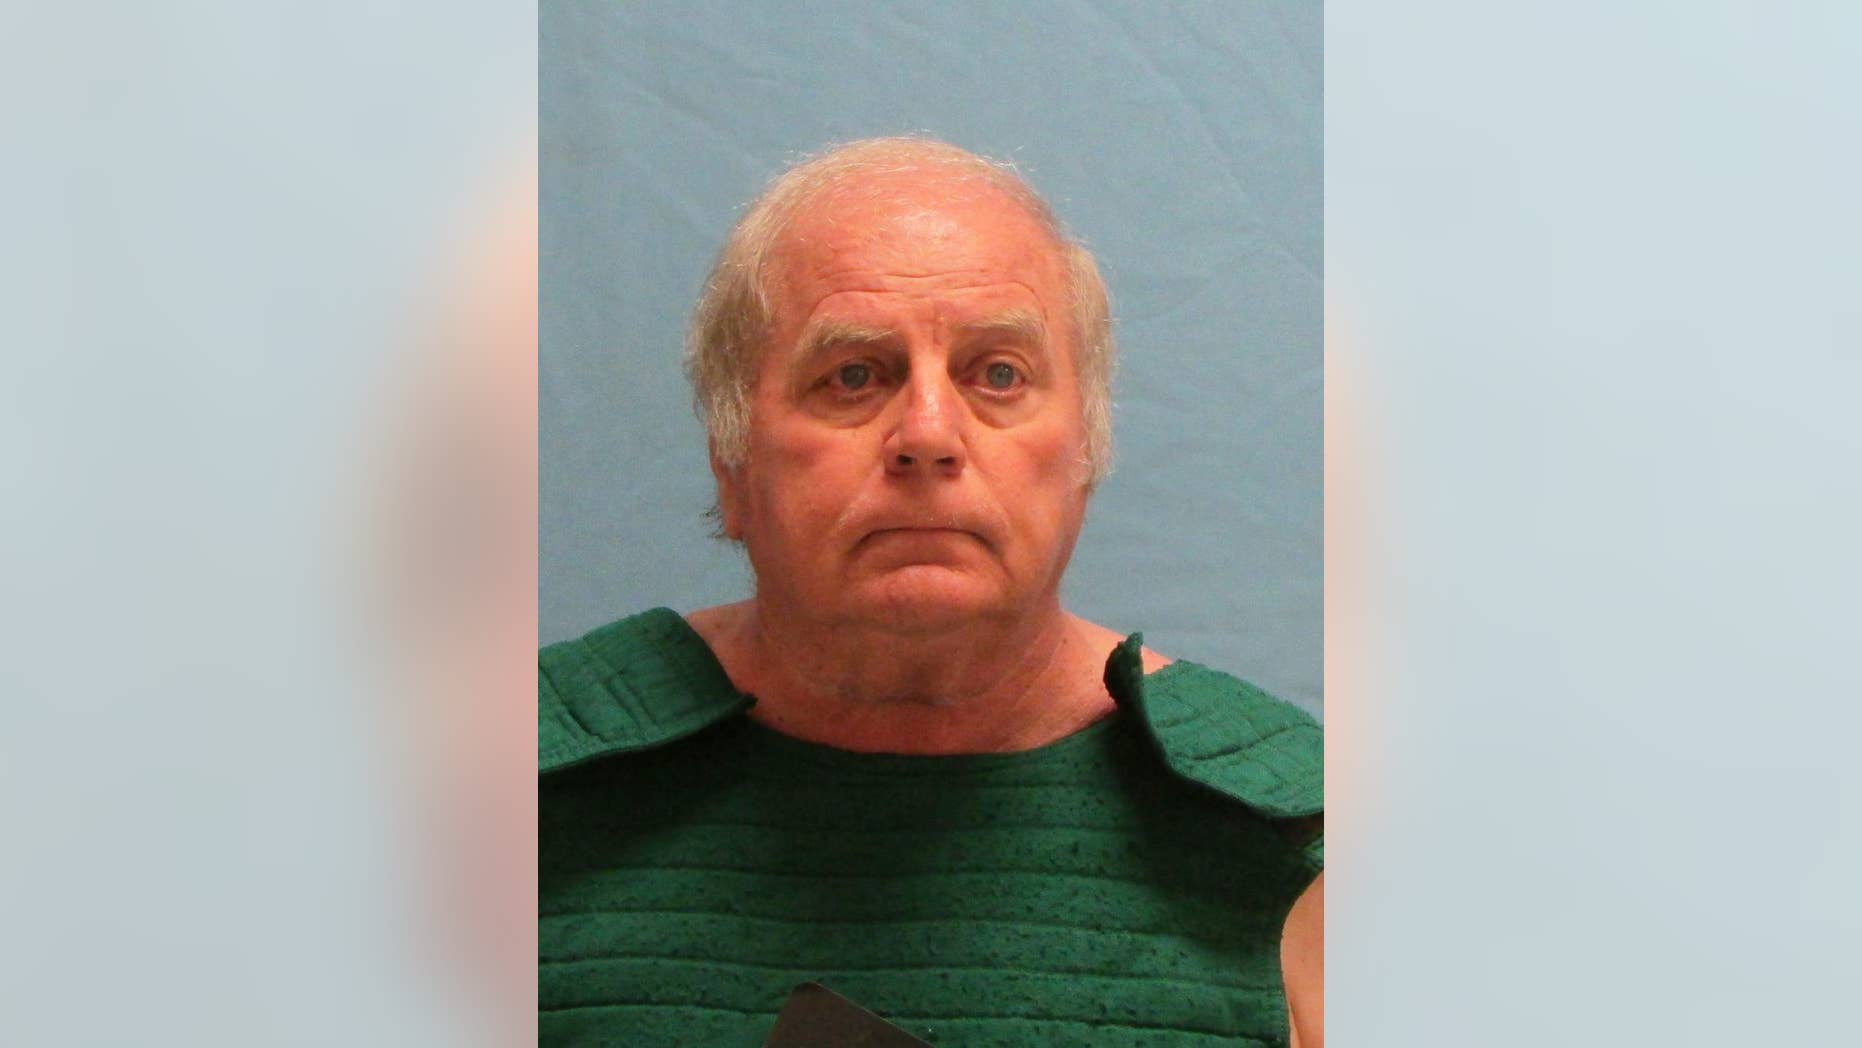 """This photo provided by the Pulaski County Sheriffs Office shows Joseph Boeckmann.  Boeckman is a former Arkansas judge accused of giving lighter sentences to defendants in exchange for nude photos and sexual acts tried to bribe witnesses and had an accomplice threaten to make one of them """"disappear,"""" federal prosecutors said shortly after his arrest Monday, Oct. 17, 2016. (Pulaski County Sheriffs Office via AP)"""